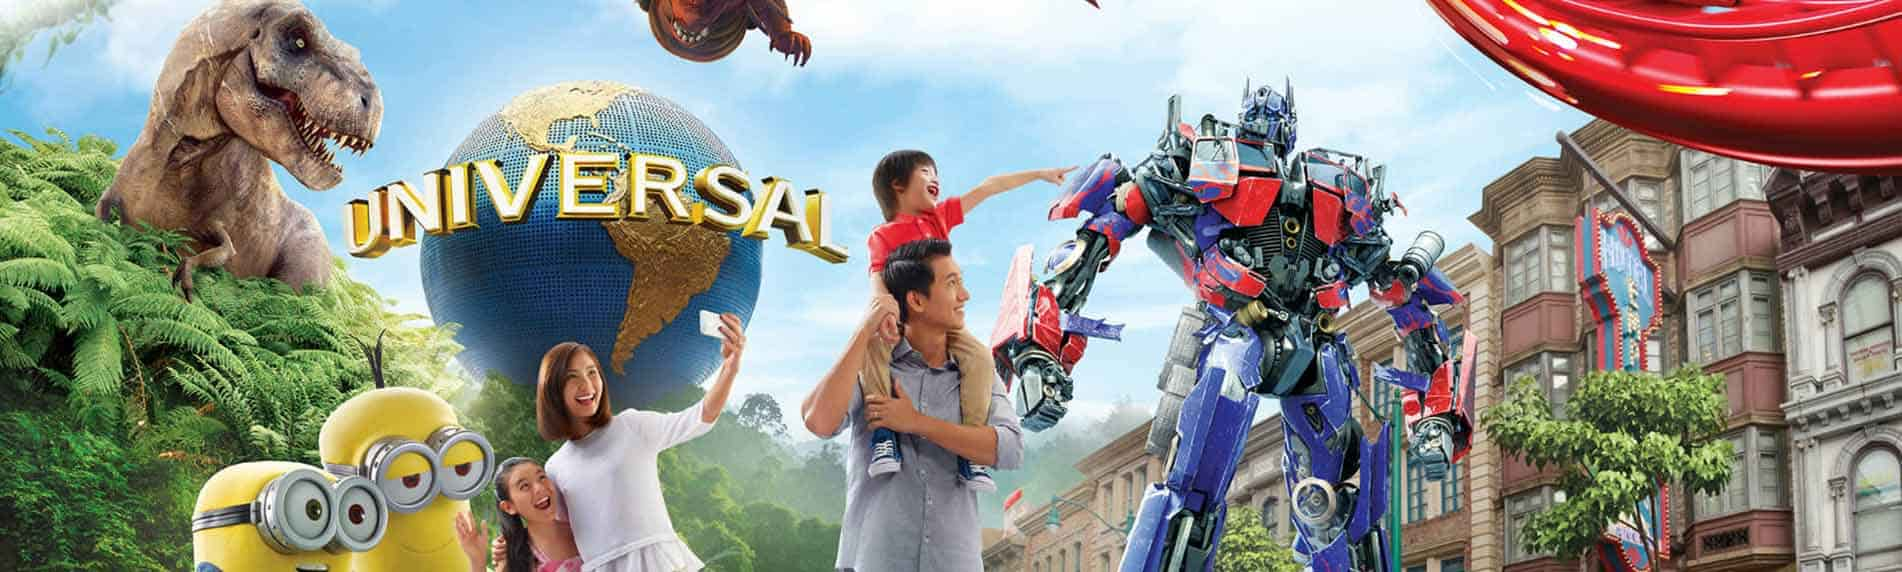 Singapore Family Getaway Package